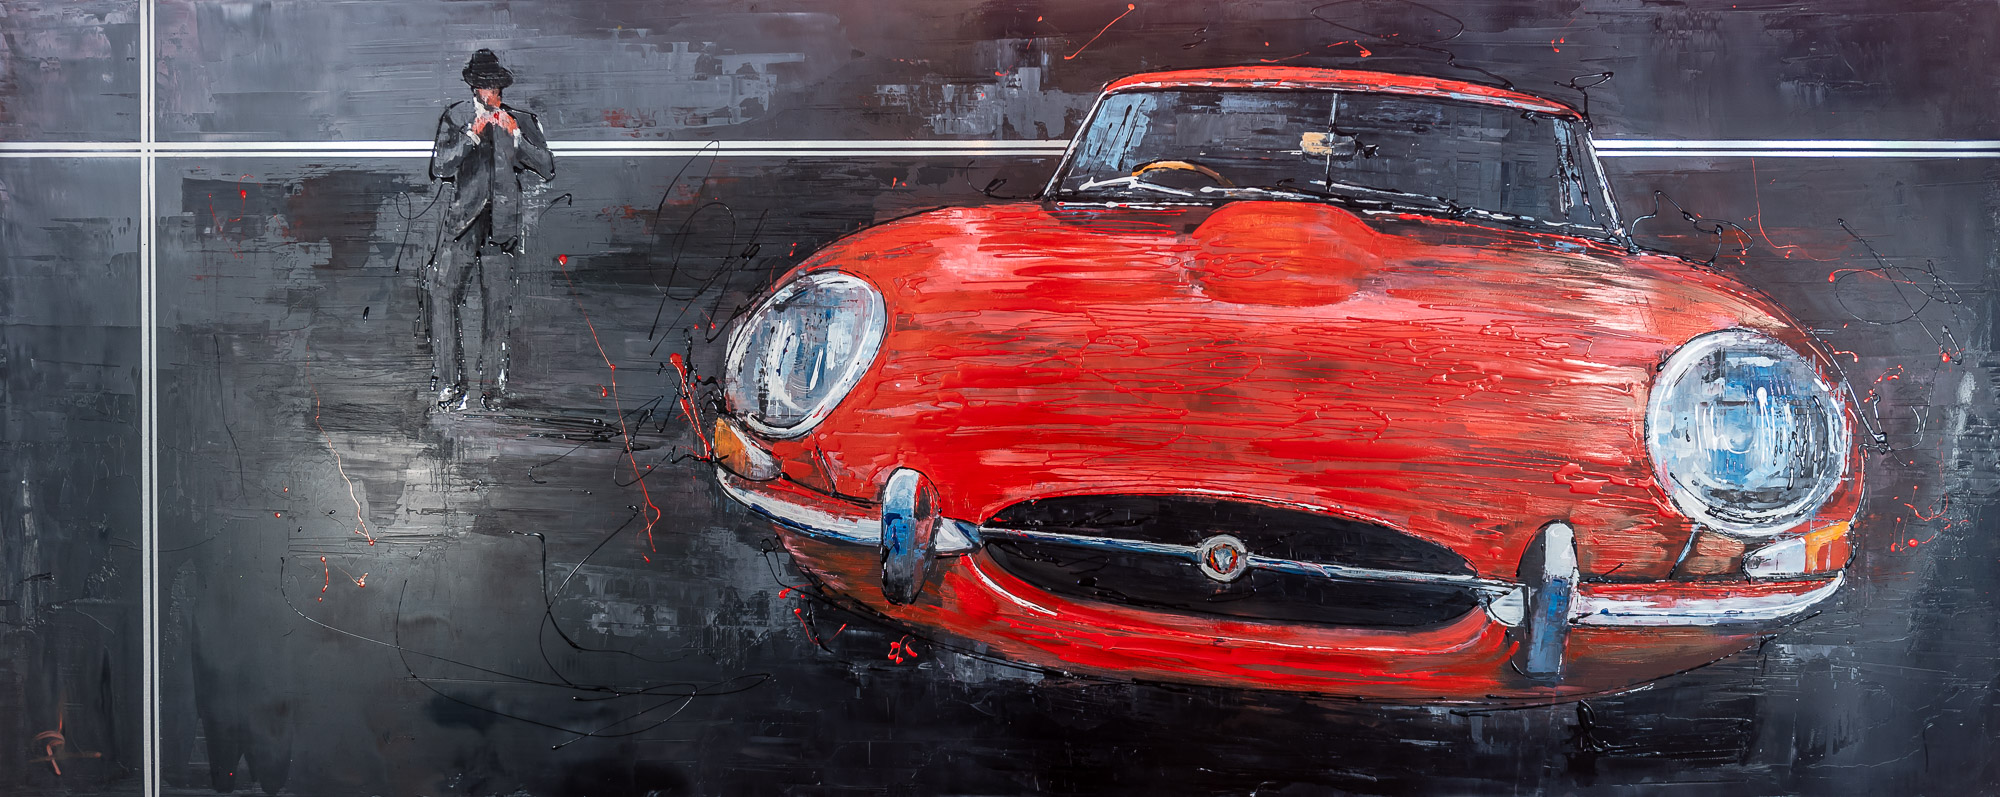 Ready and Waiting by Paul Kenton, UK Contemporary artist, an original painting from his Motorsports collection